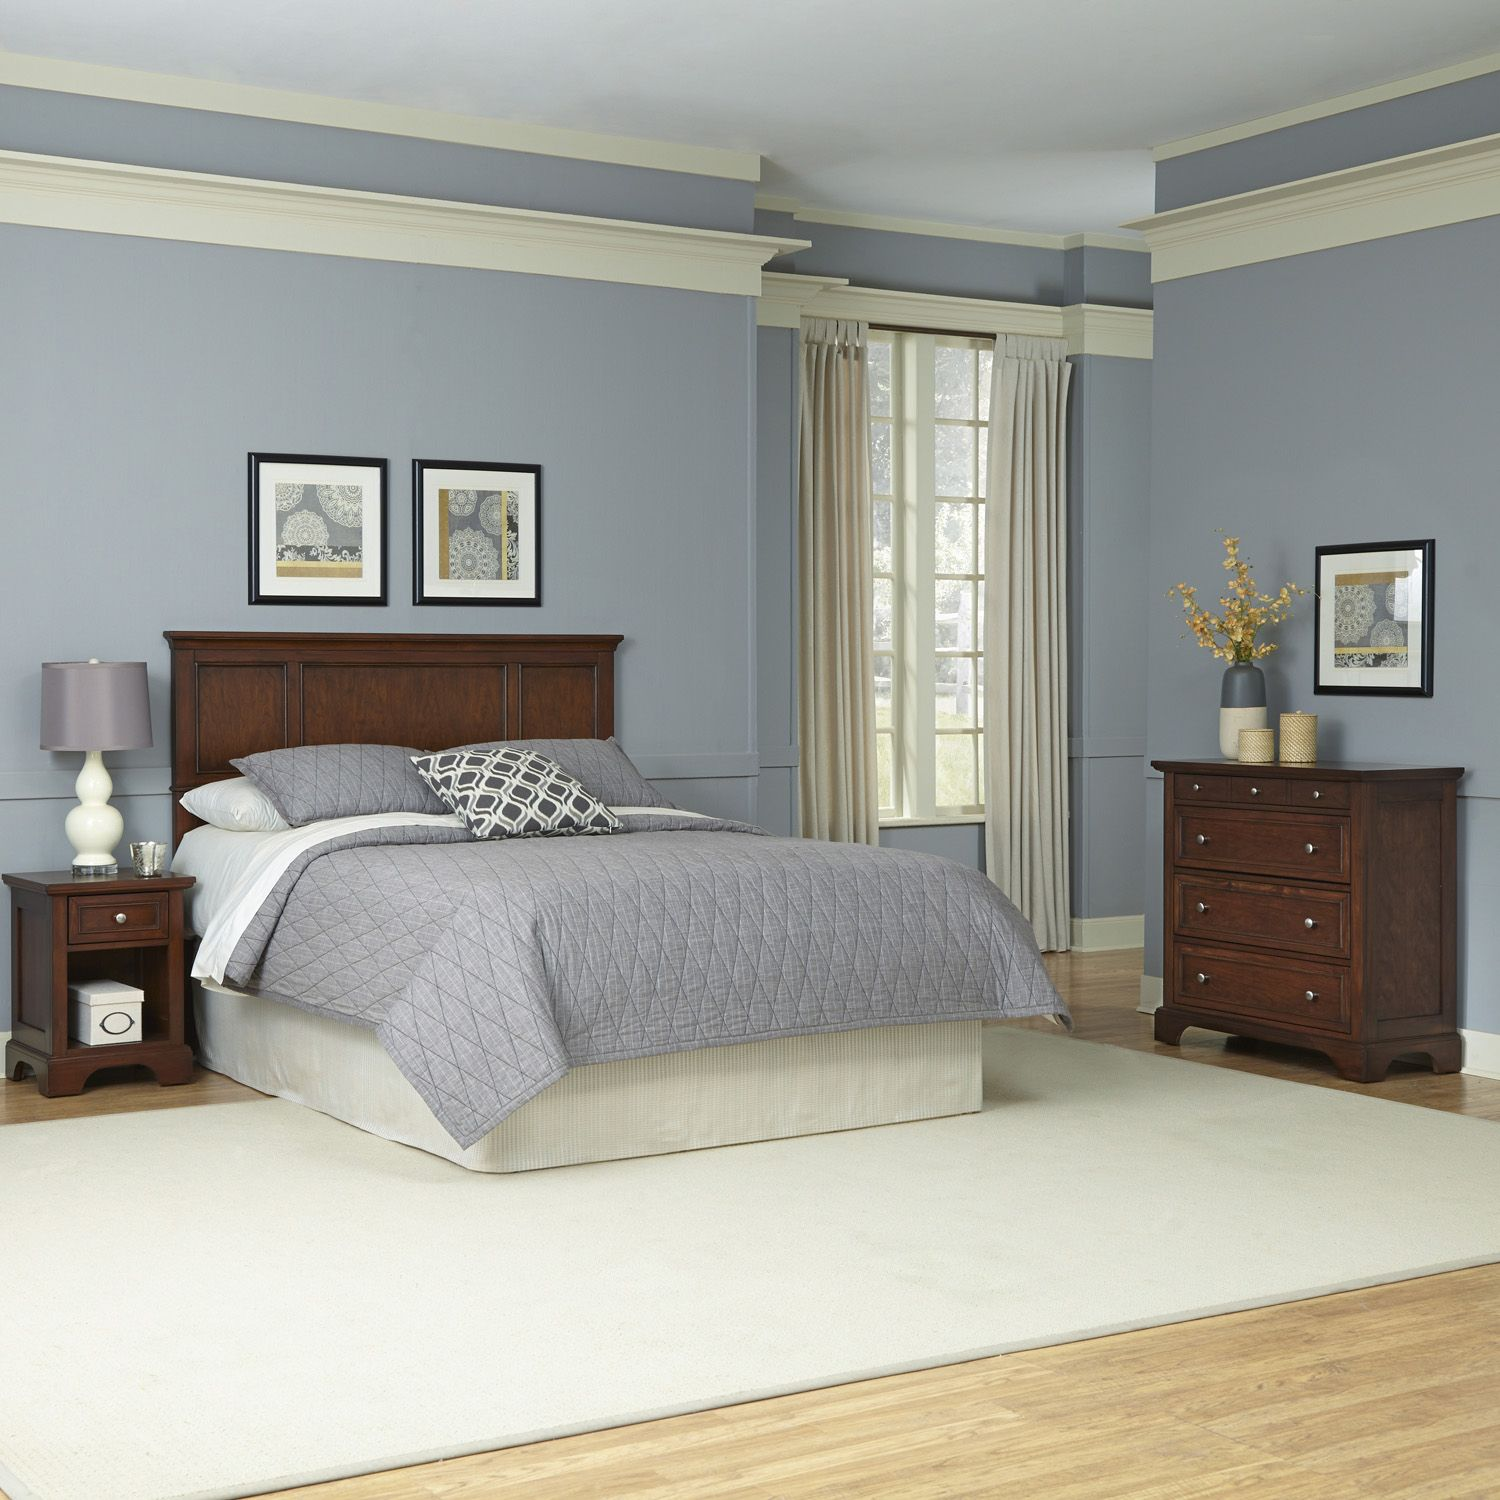 Simple Home Styles piece Chesapeake Bedroom Set